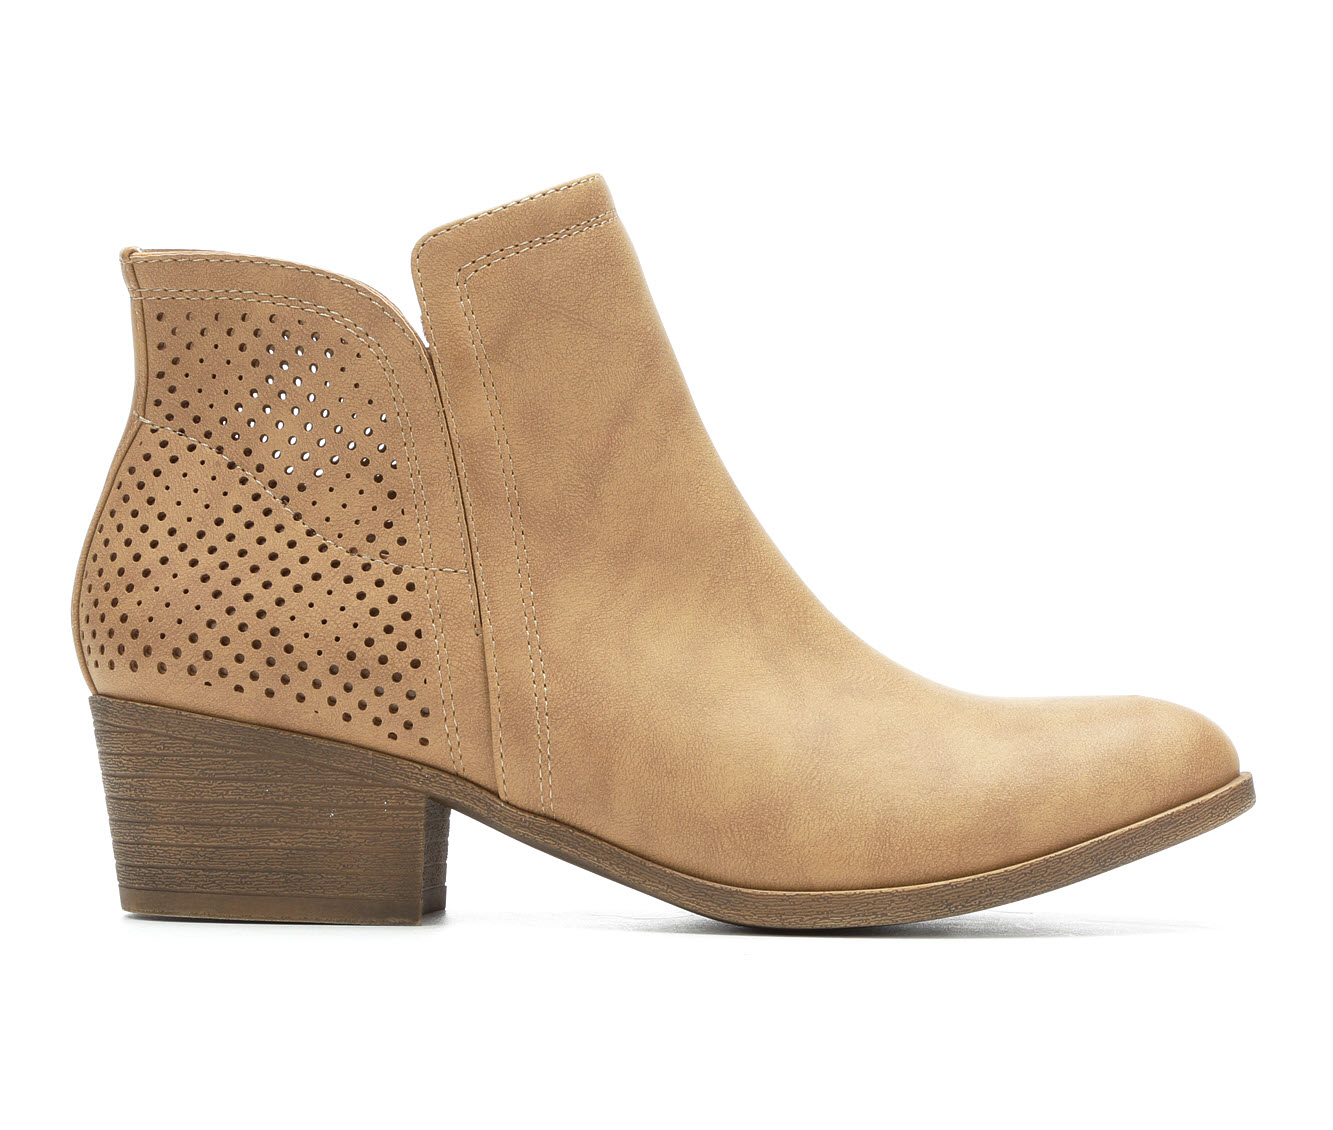 Madden Girl Honorr Women's Boot (Beige Faux Leather)